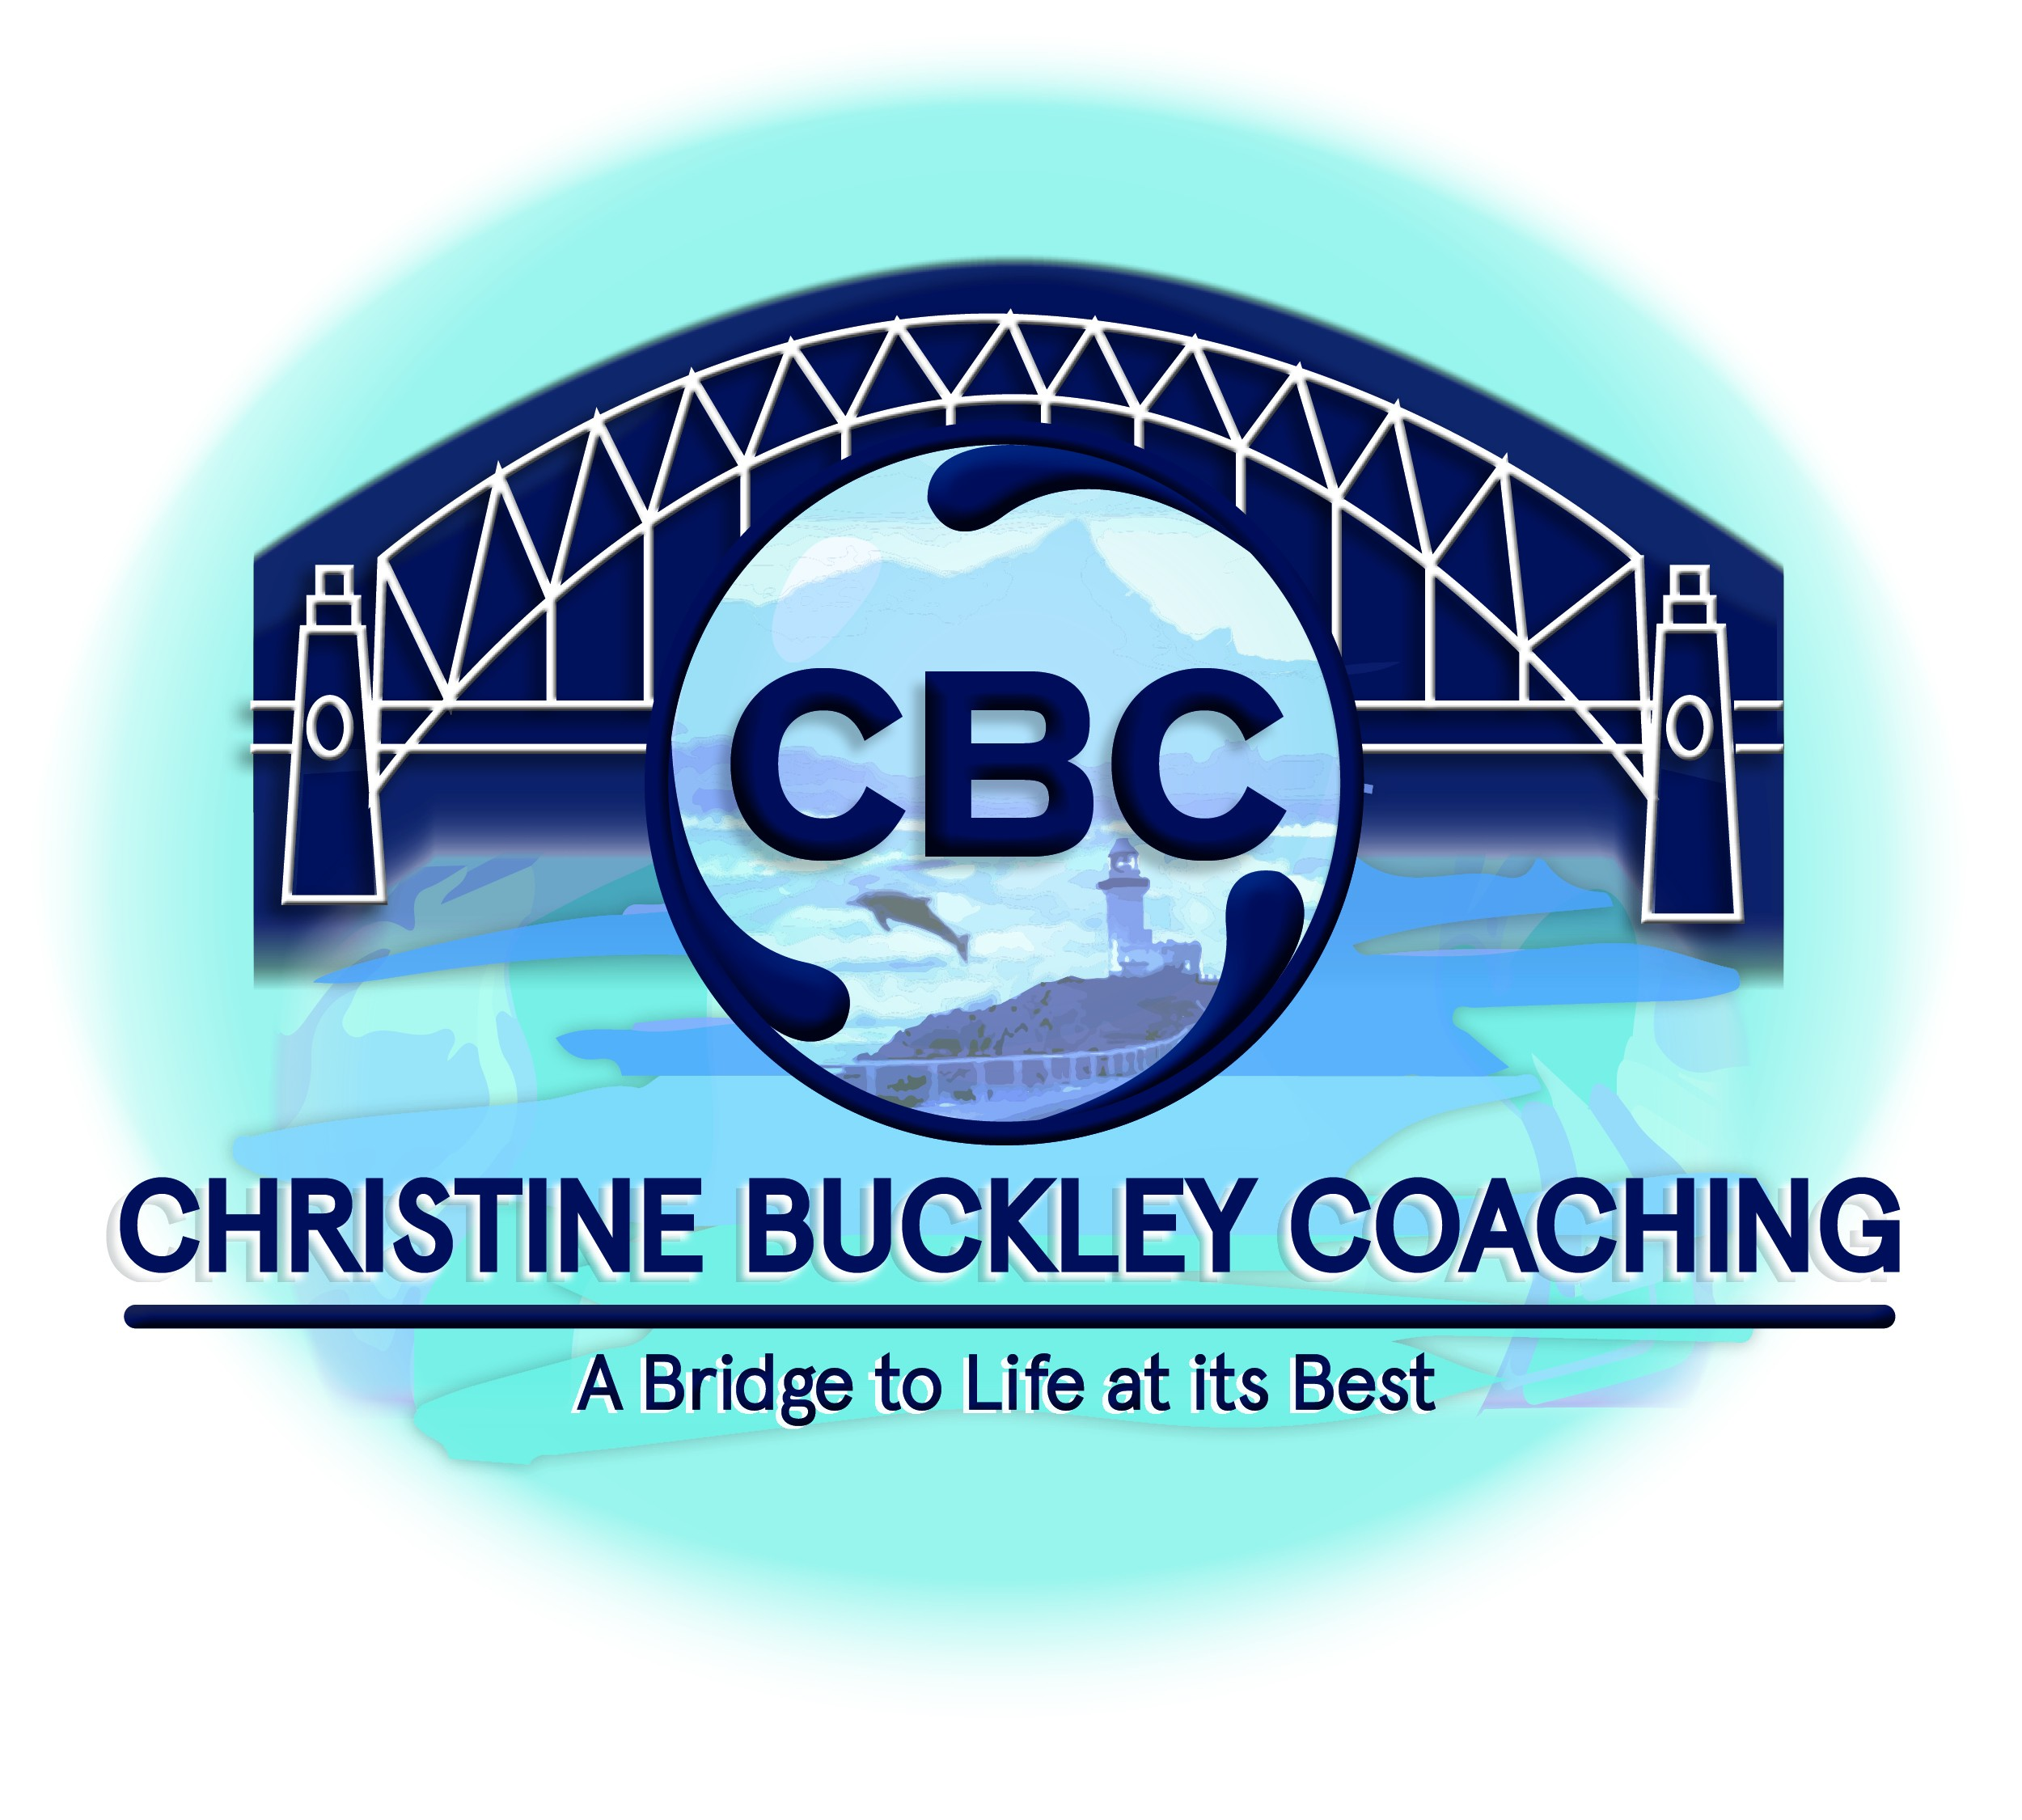 Christine Buckley Coaching